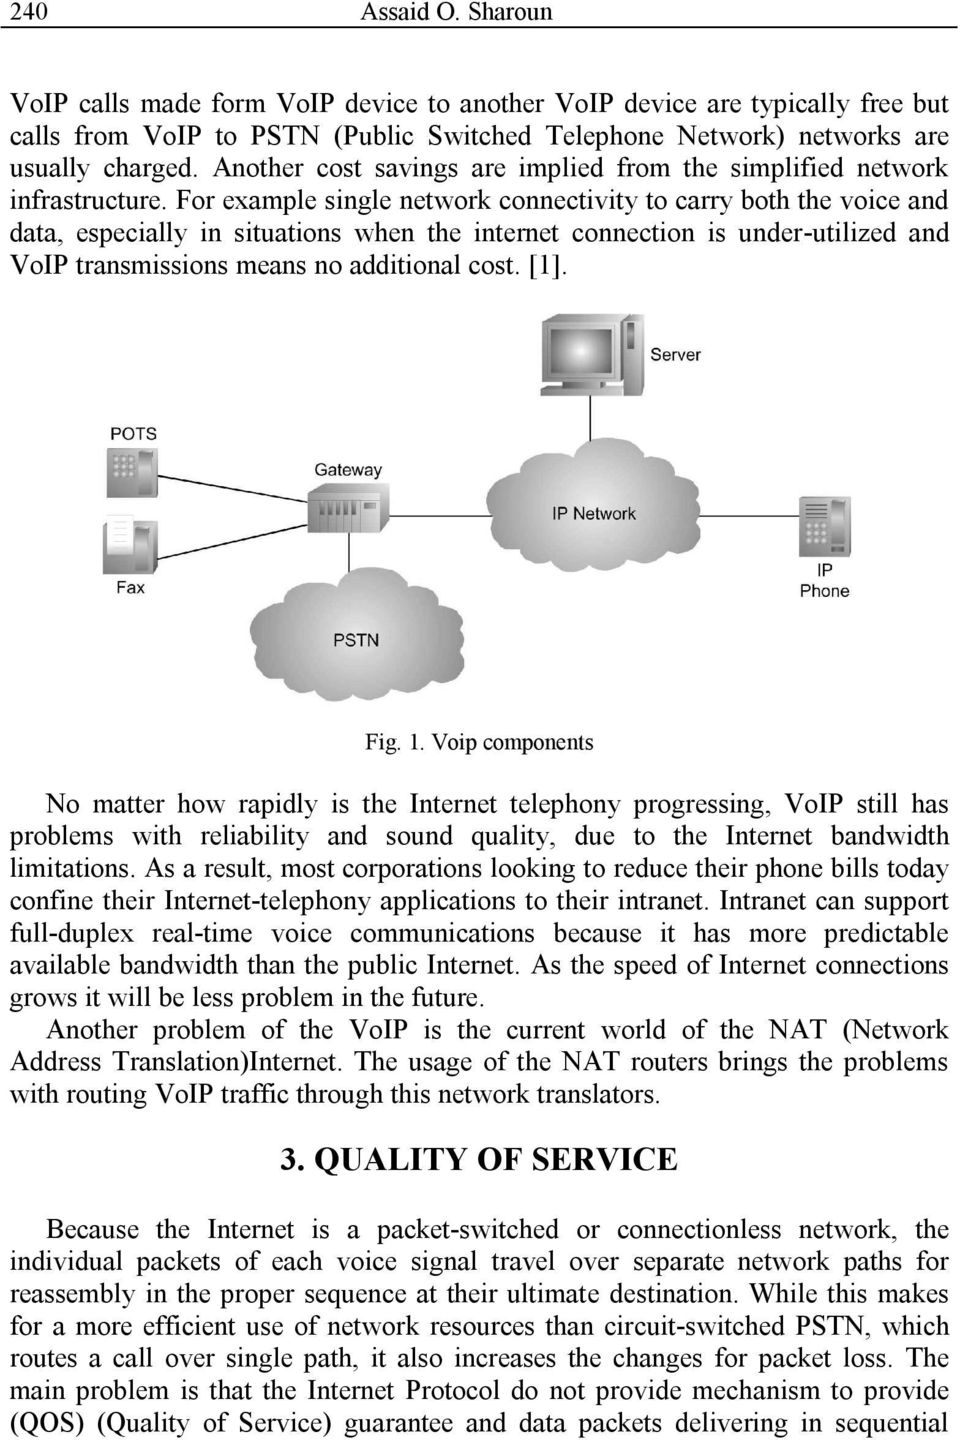 For example single network connectivity to carry both the voice and data, especially in situations when the internet connection is under-utilized and VoIP transmissions means no additional cost. [1].